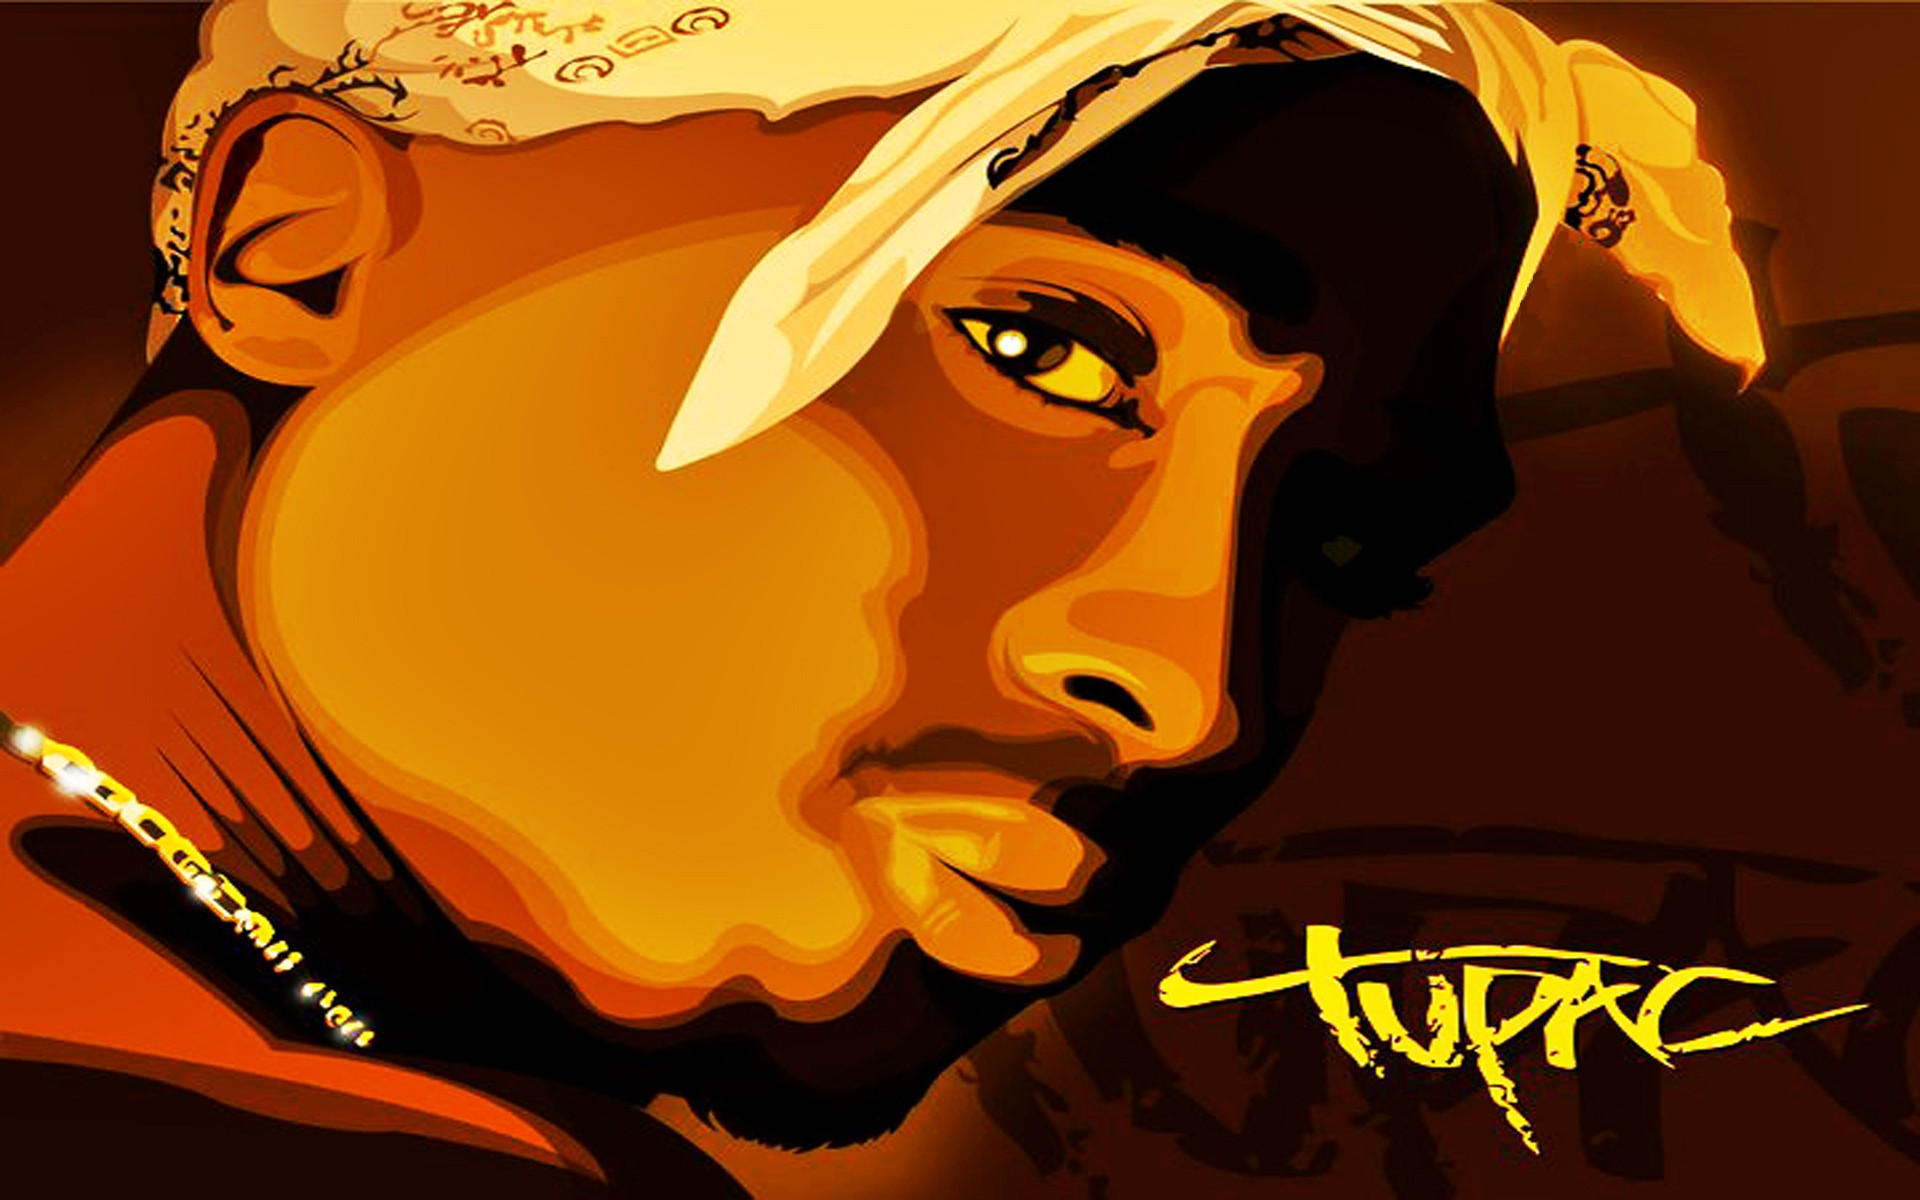 40 tupac wallpaper hd - photo #27